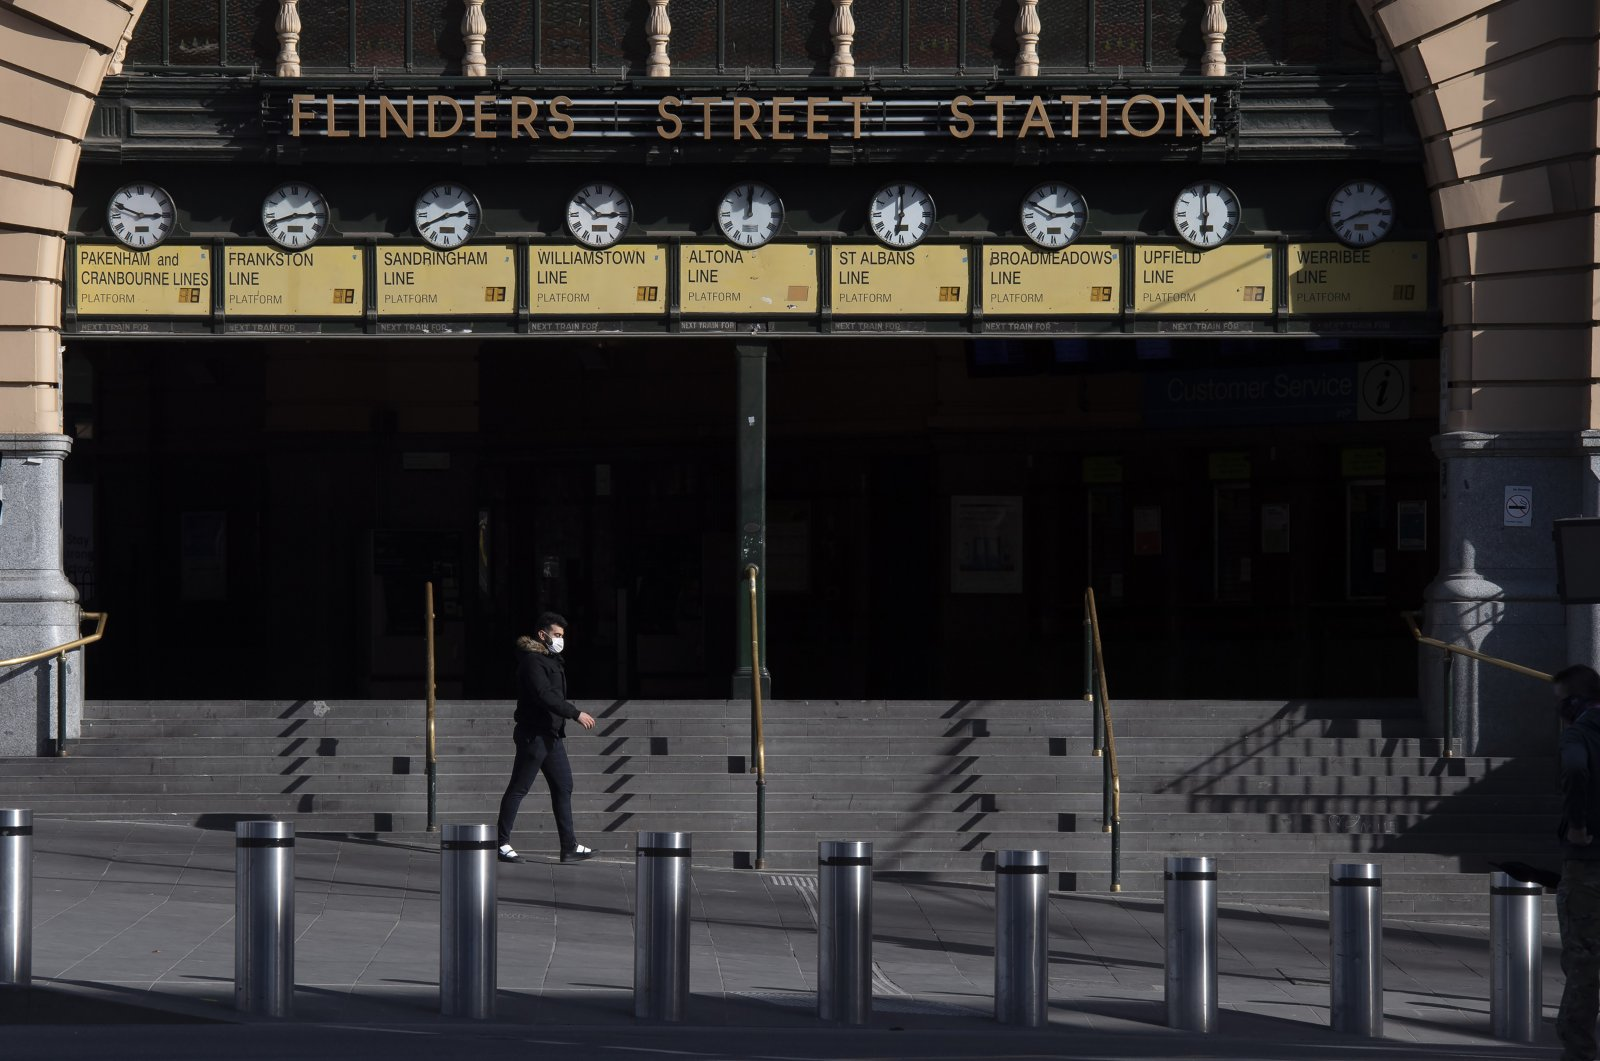 Flinders Street Station is quiet during lockdown due to the continuing spread of the coronavirus in Melbourne, Australia, Aug. 6, 2020. (AP Photo)